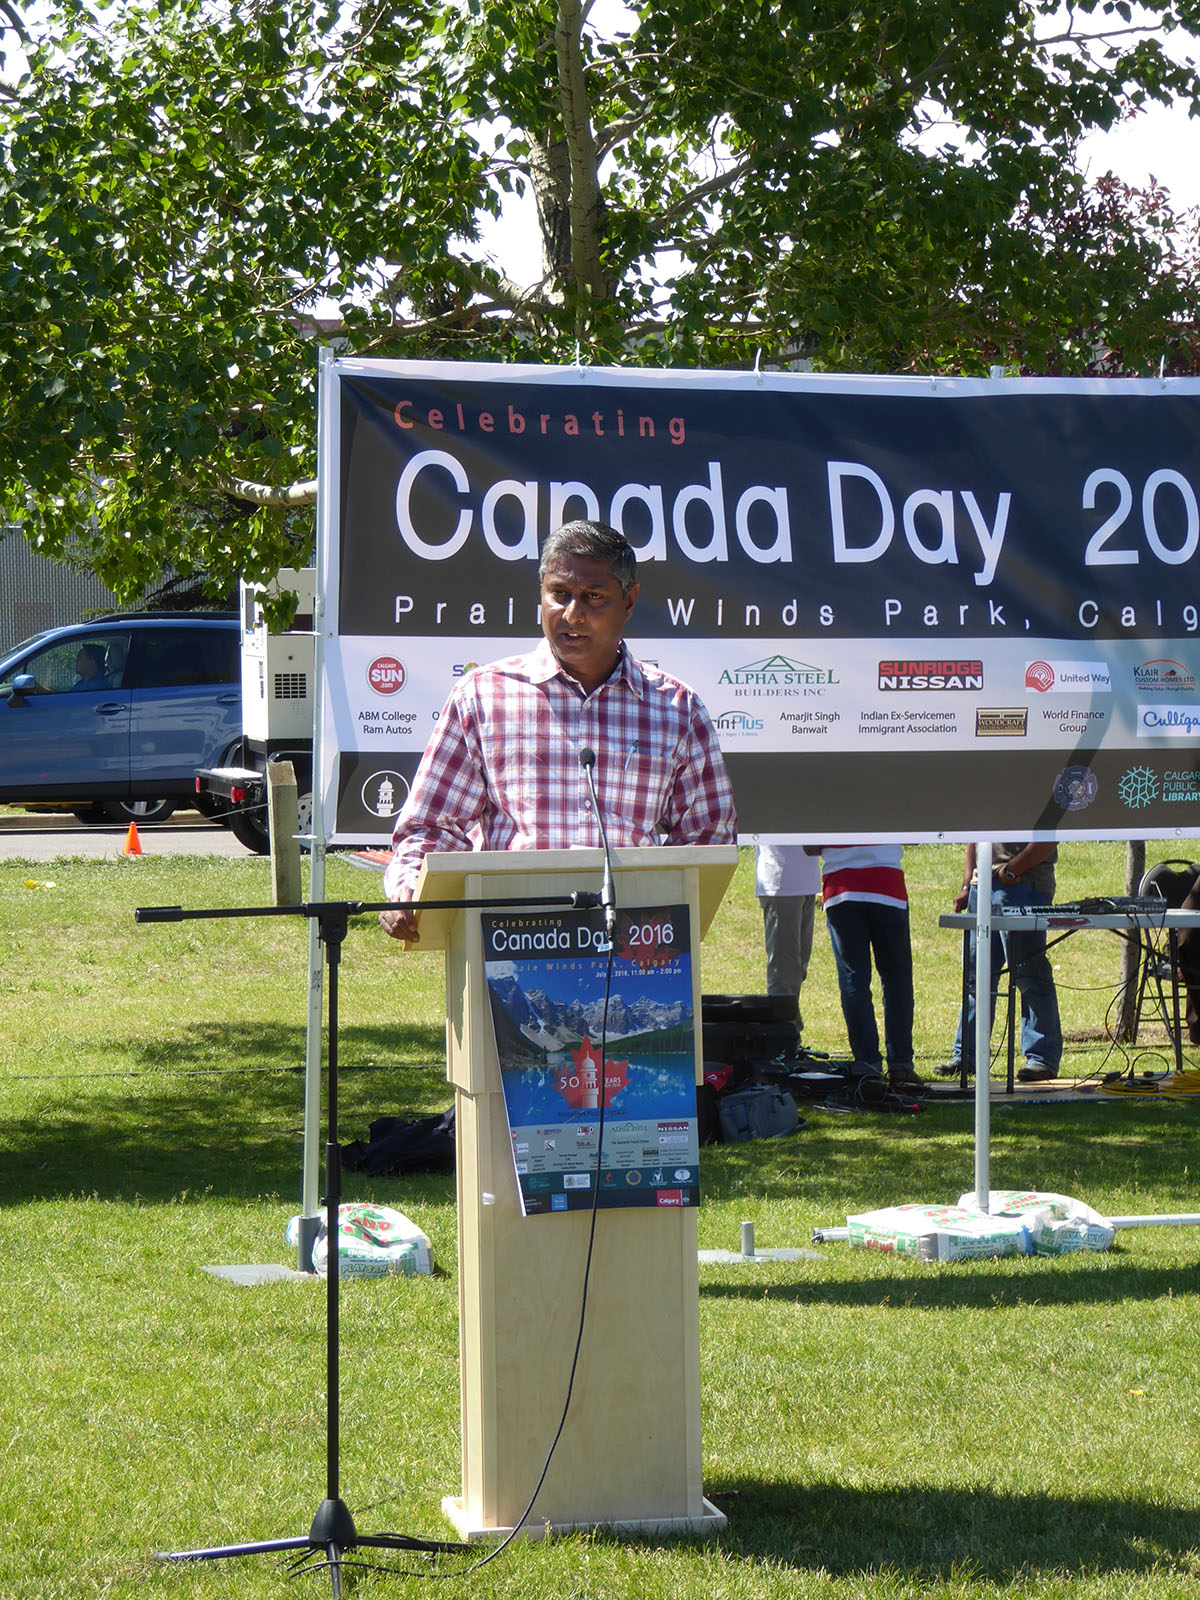 https://d3n8a8pro7vhmx.cloudfront.net/prasadpanda/pages/13/features/original/Canada_Day_2016.jpg?1525893056